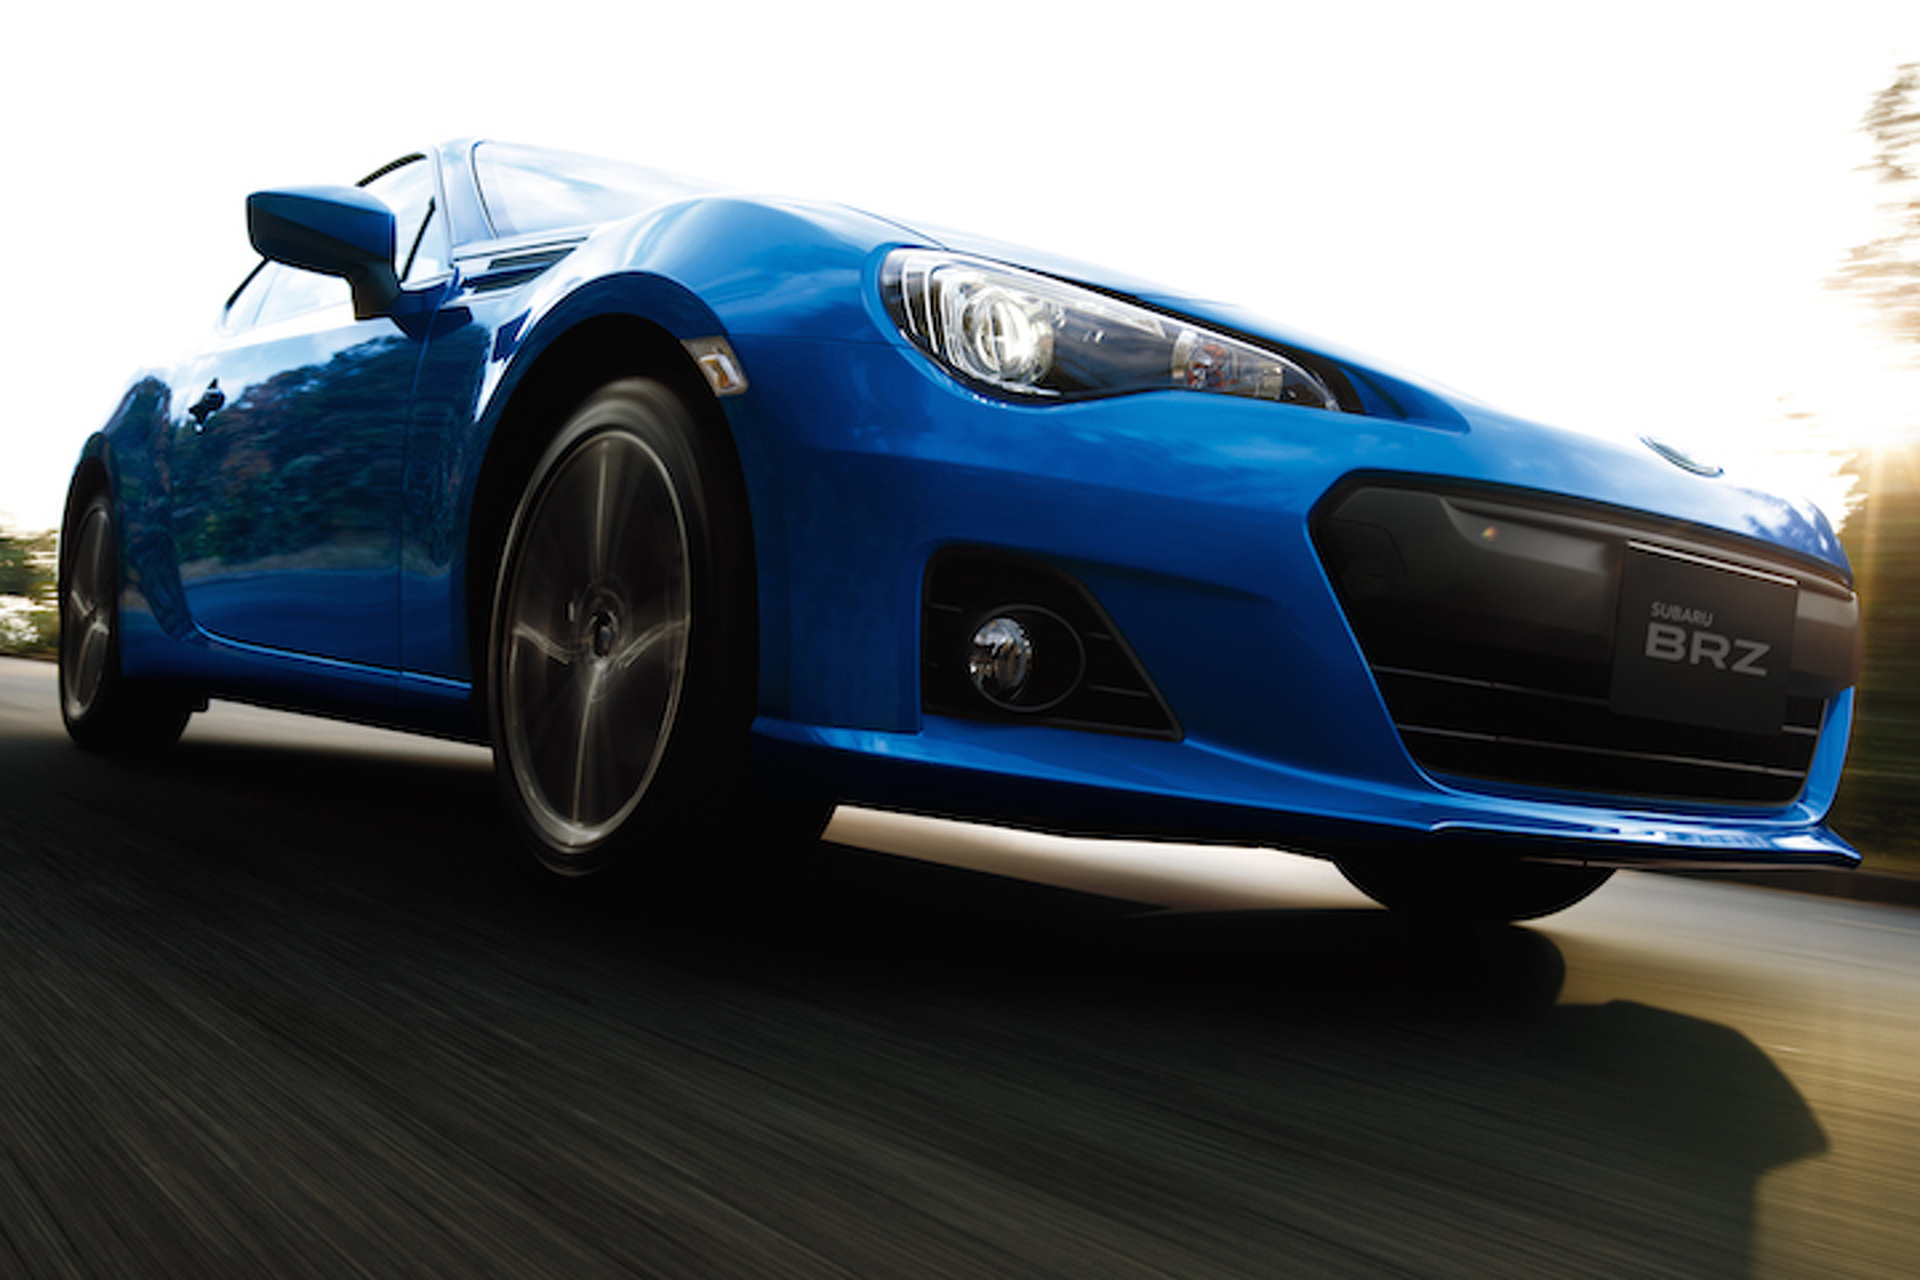 A Second Generation Subaru BRZ/Scion FR-S is On the Way